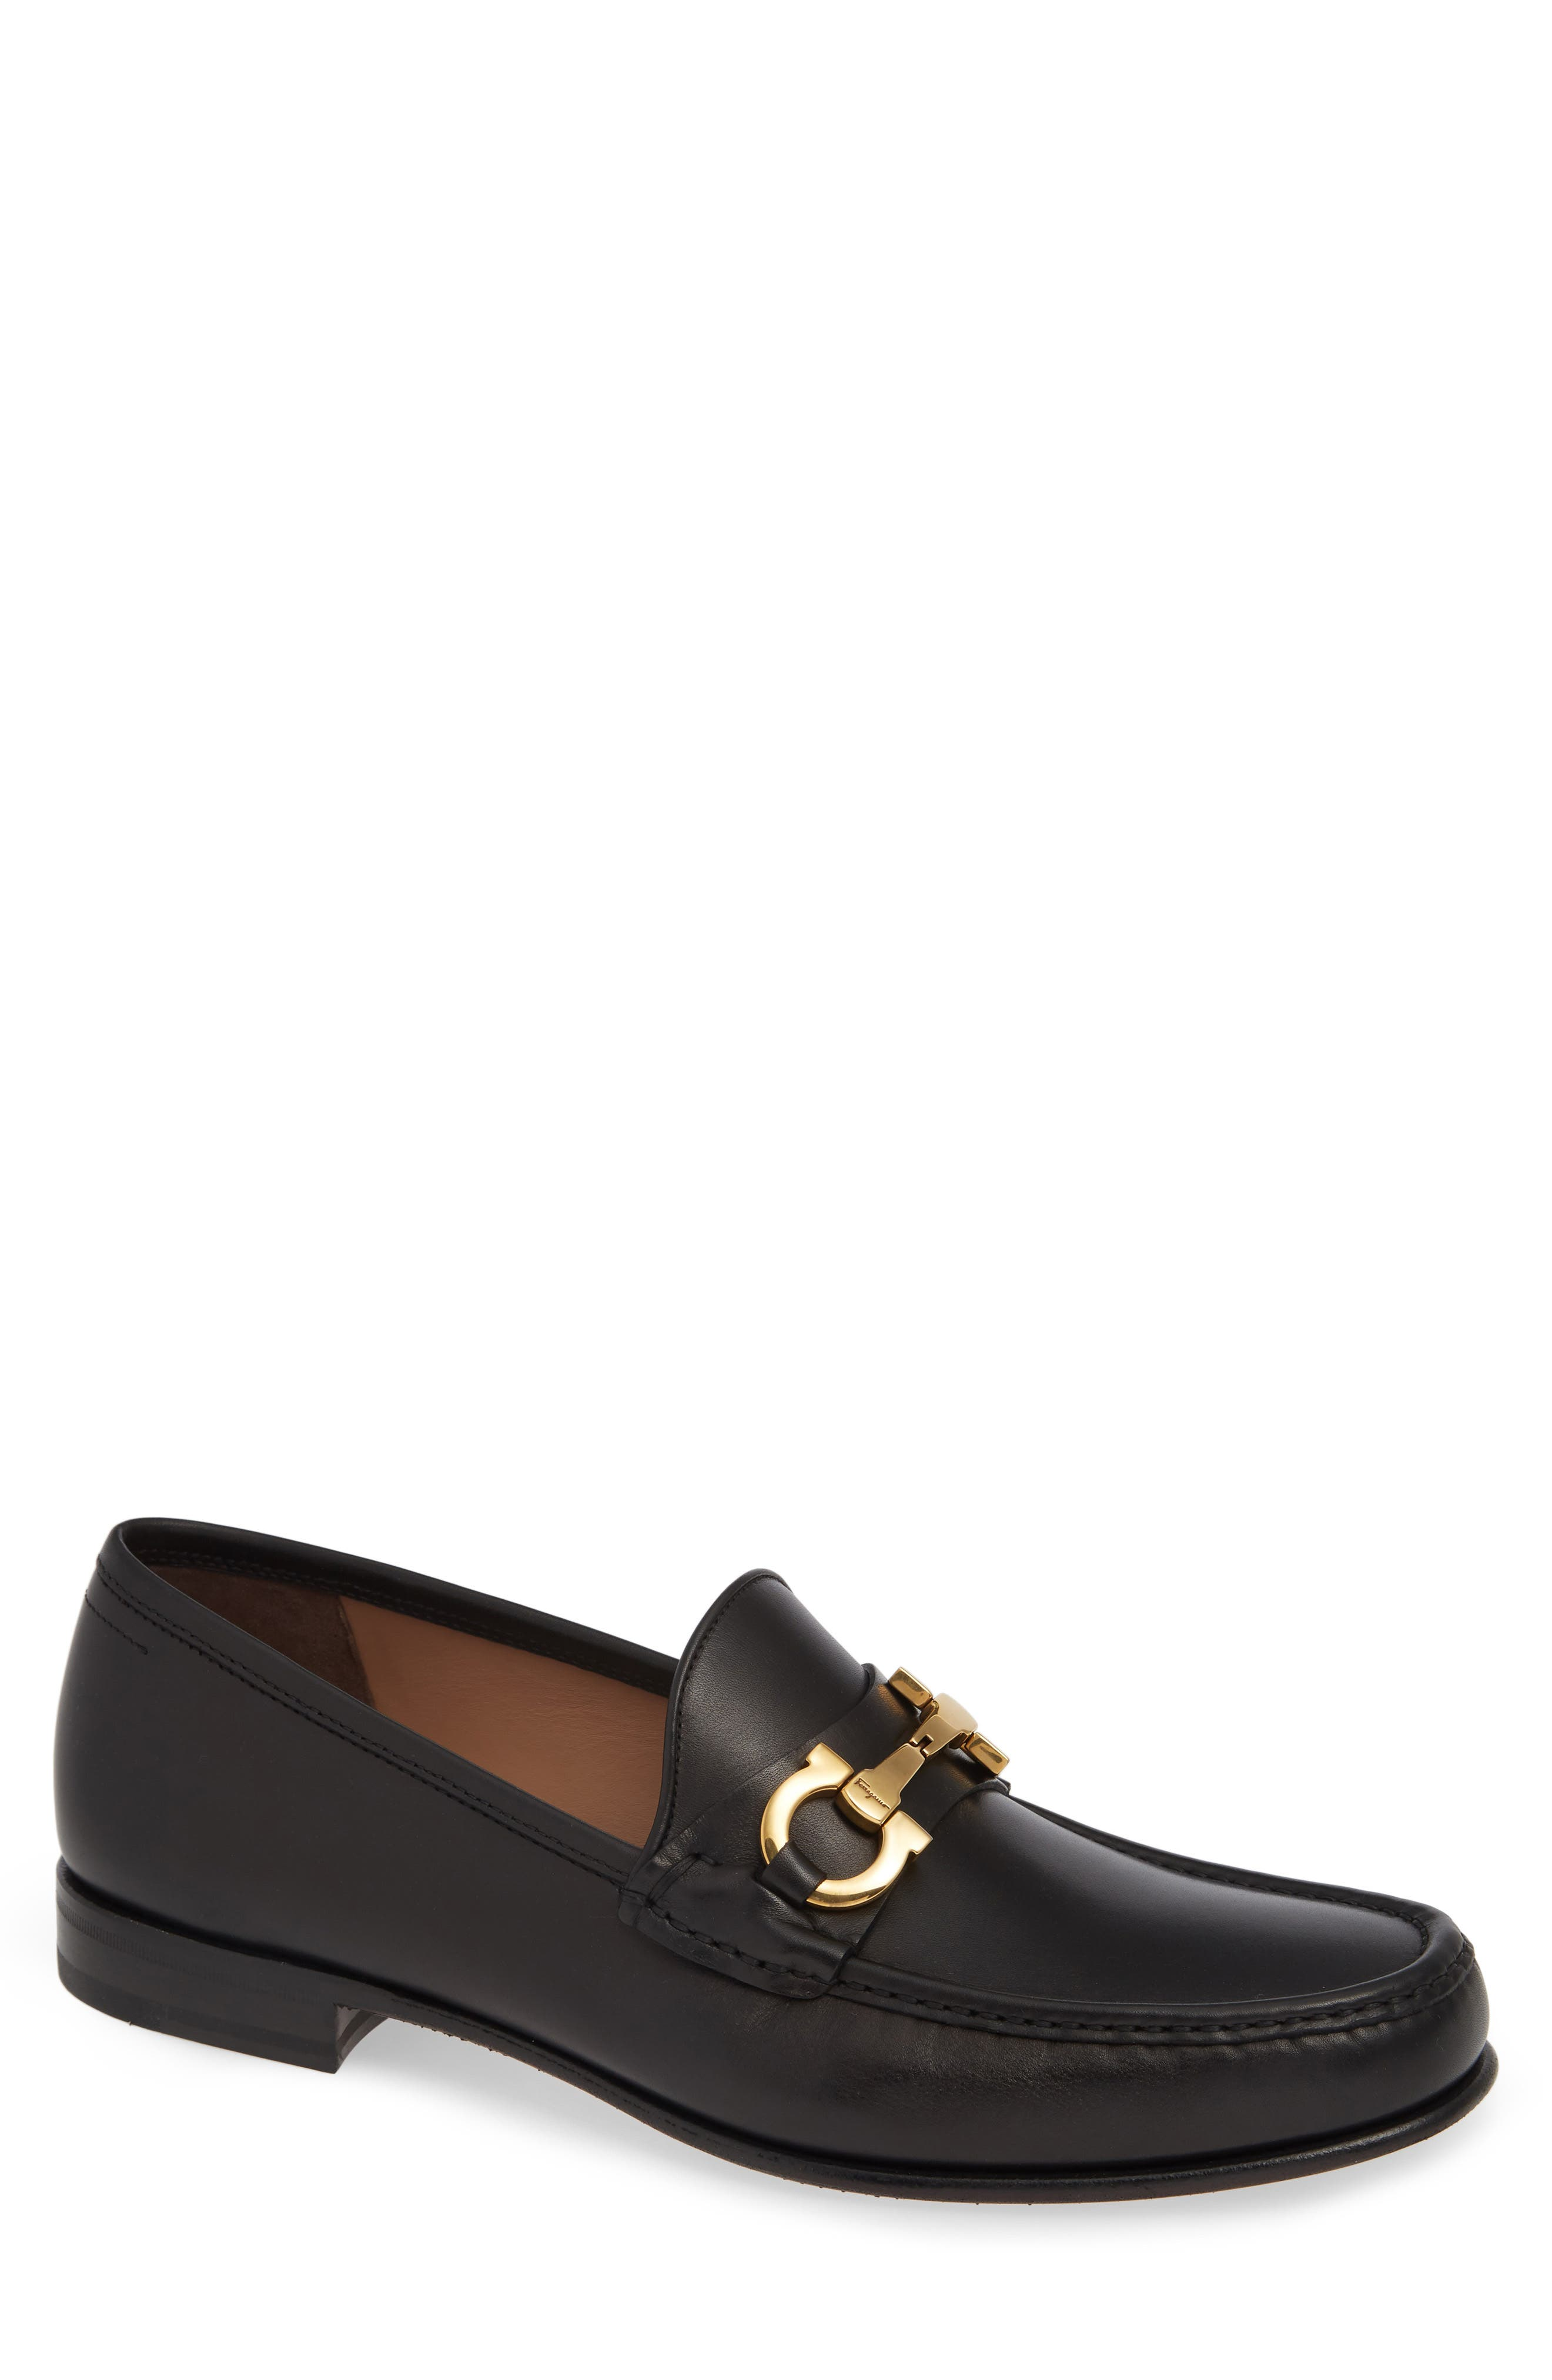 Bond Bitted Moc Loafer,                         Main,                         color, NERO LEATHER